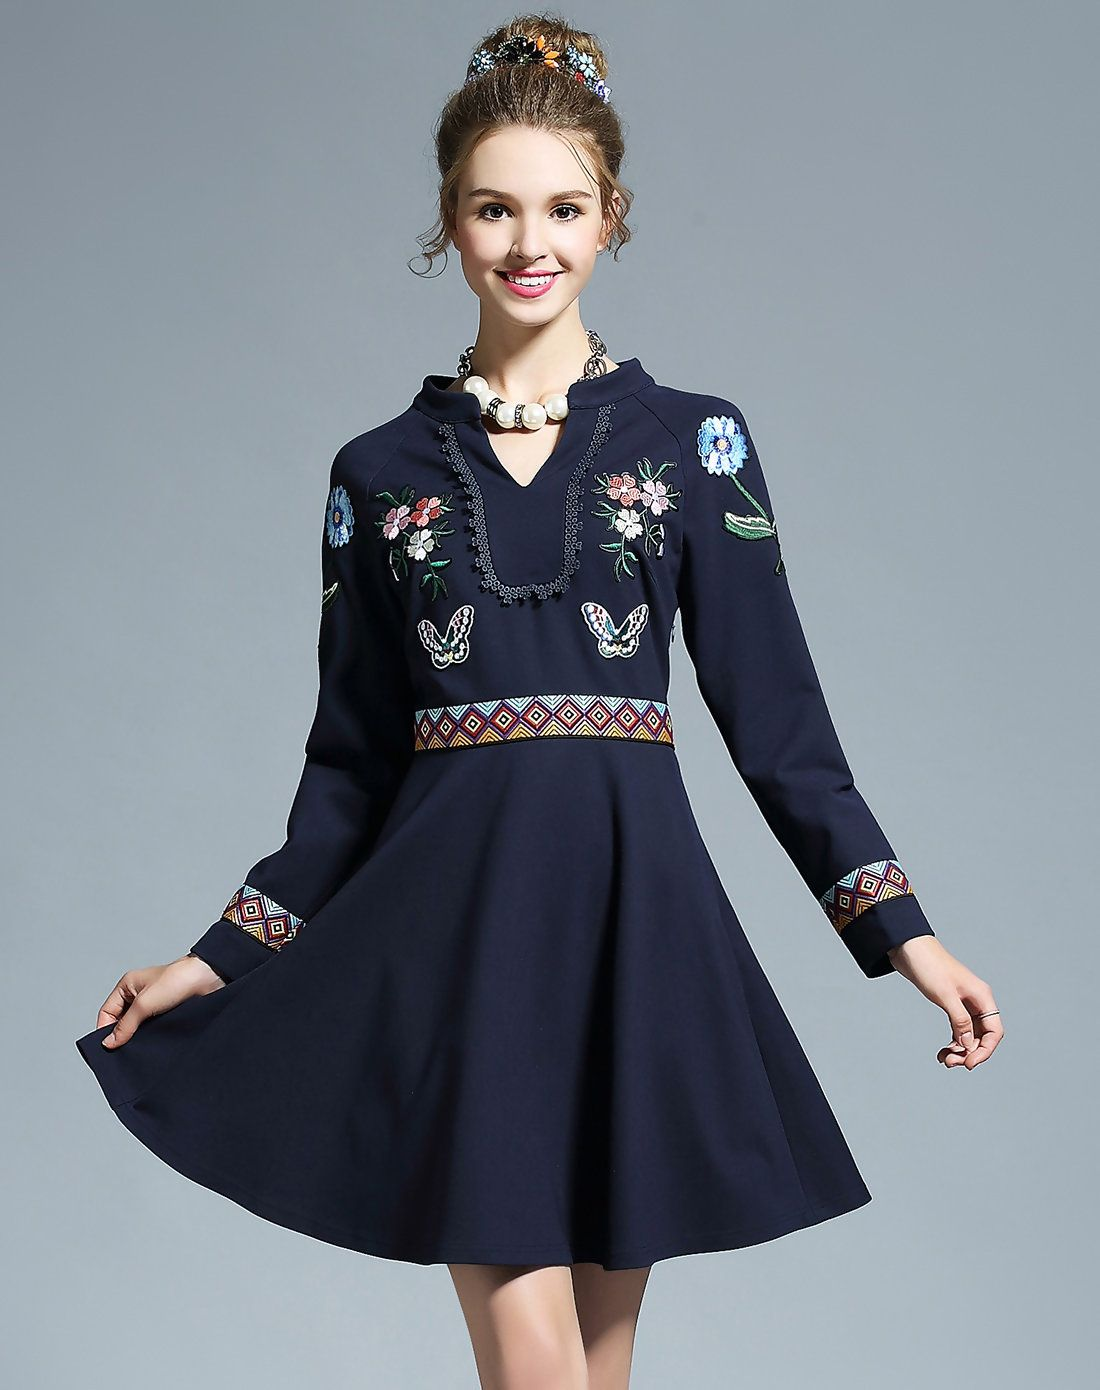 AdoreWe #VIPme A-Line Dresses - OUYALIN Blue Floral Embroidered A ...